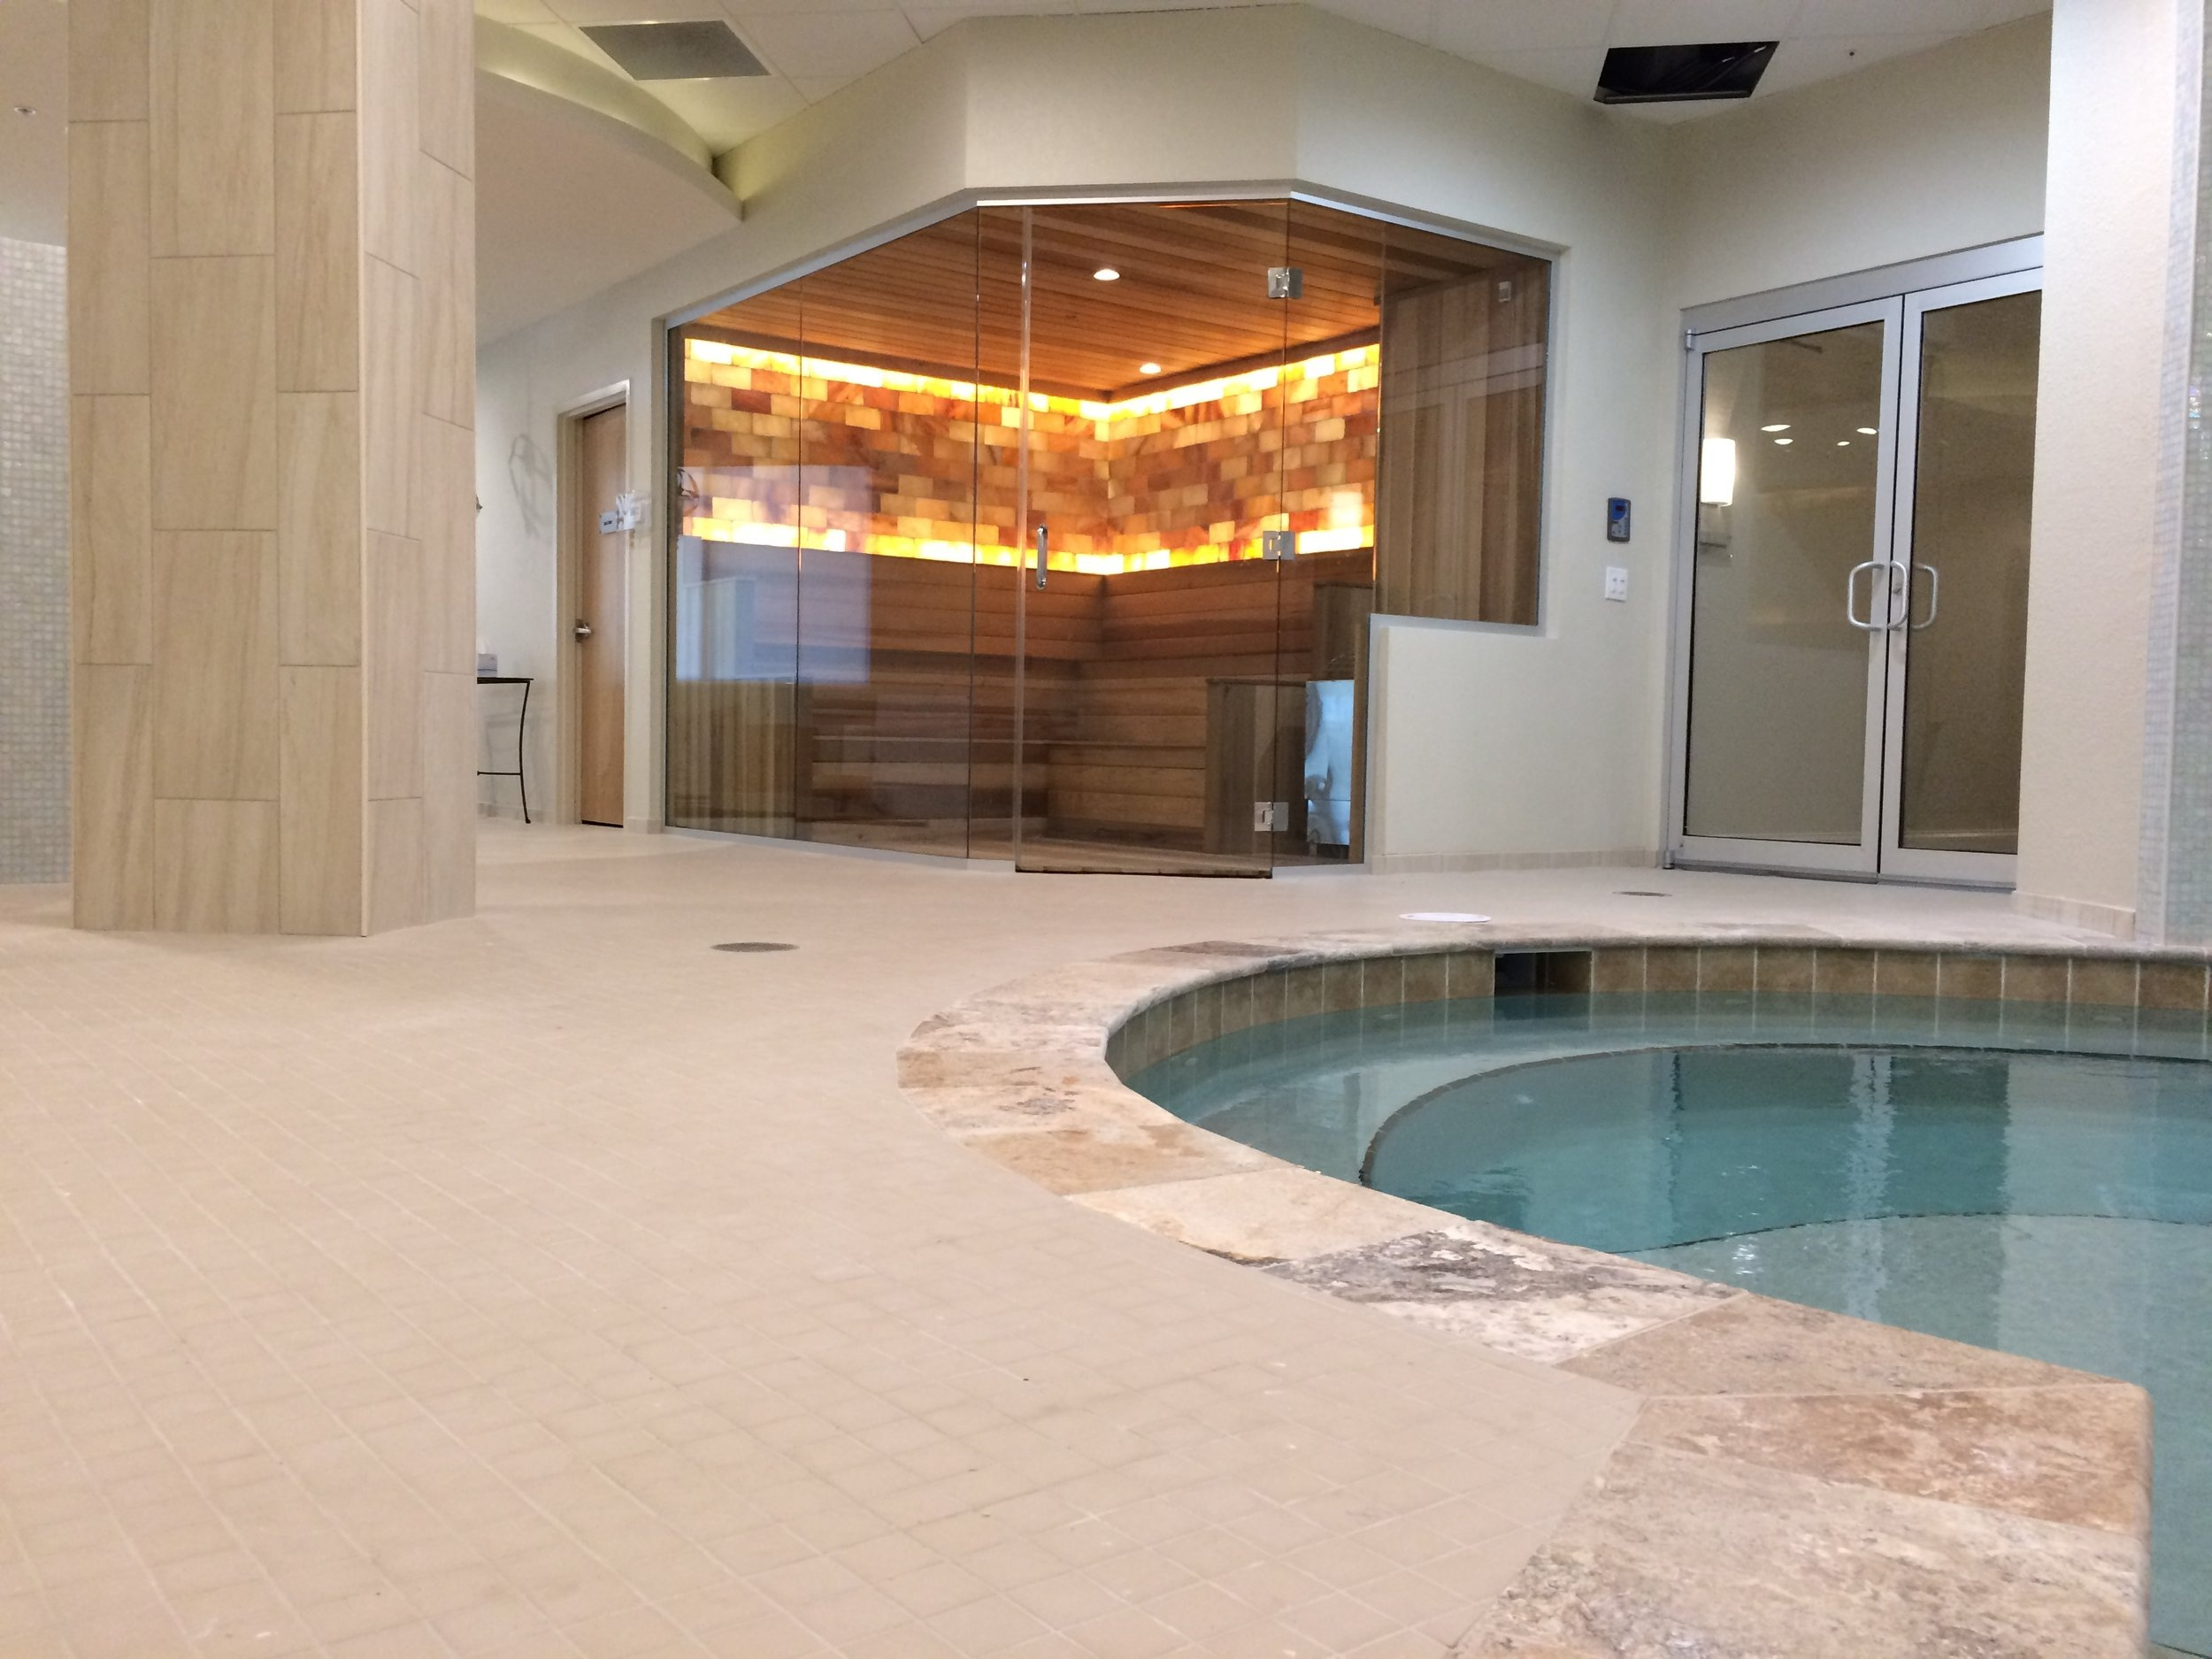 The Spa at Venetian Bay in New Smyrna Beach, FL